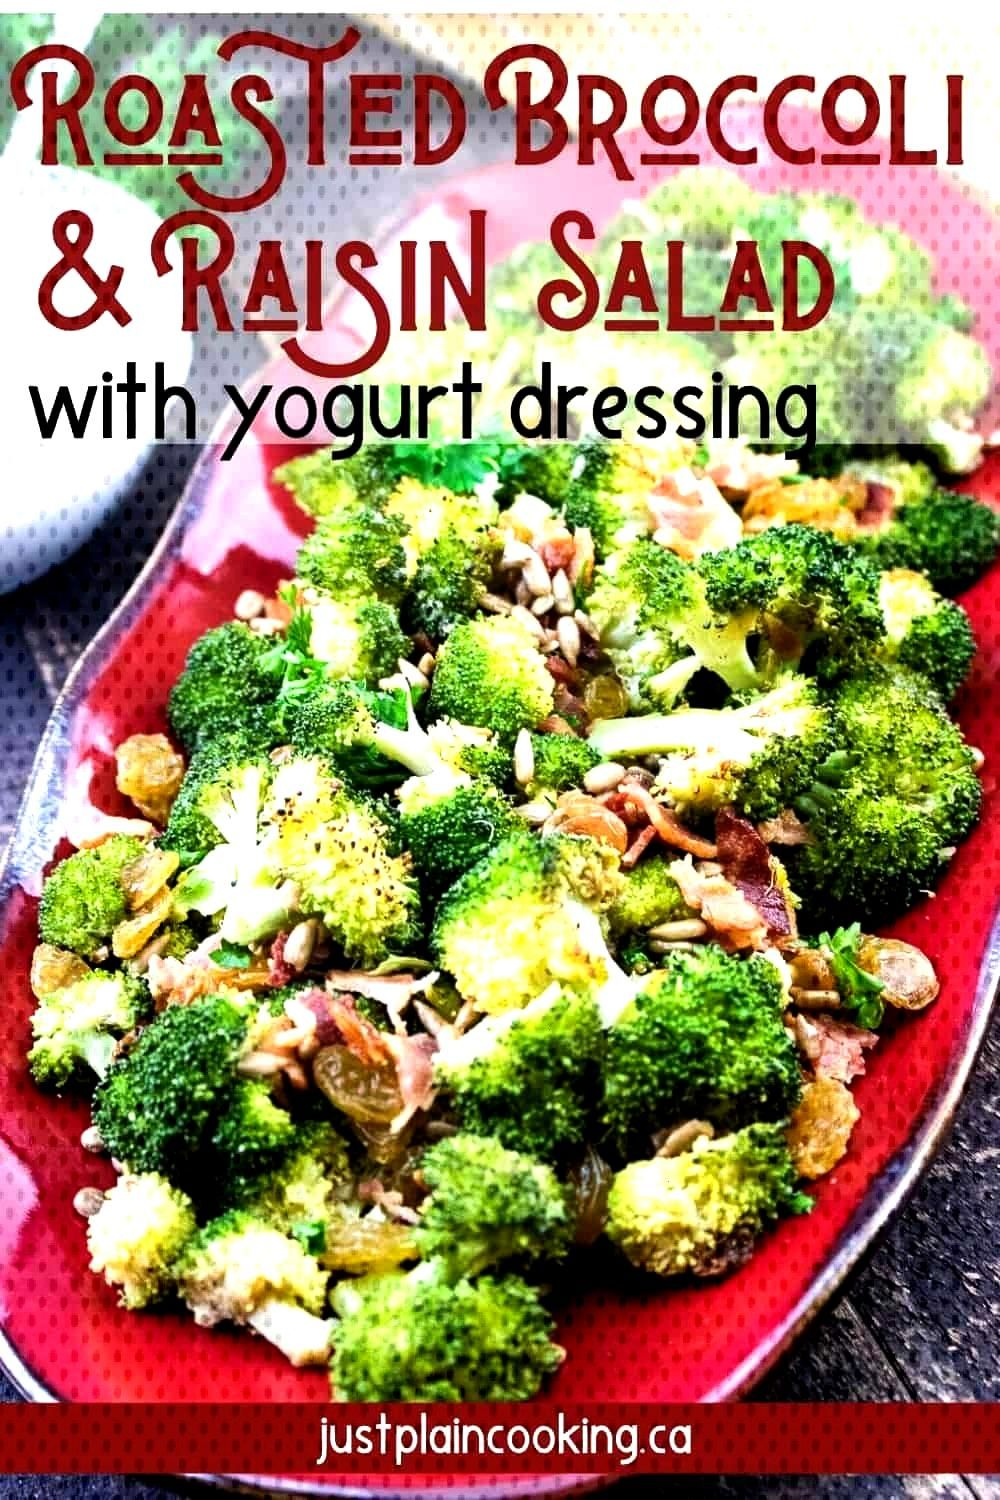 Put down the lettuce and try this hearty and filling Roasted Broccoli Salad filled with raisins, ba